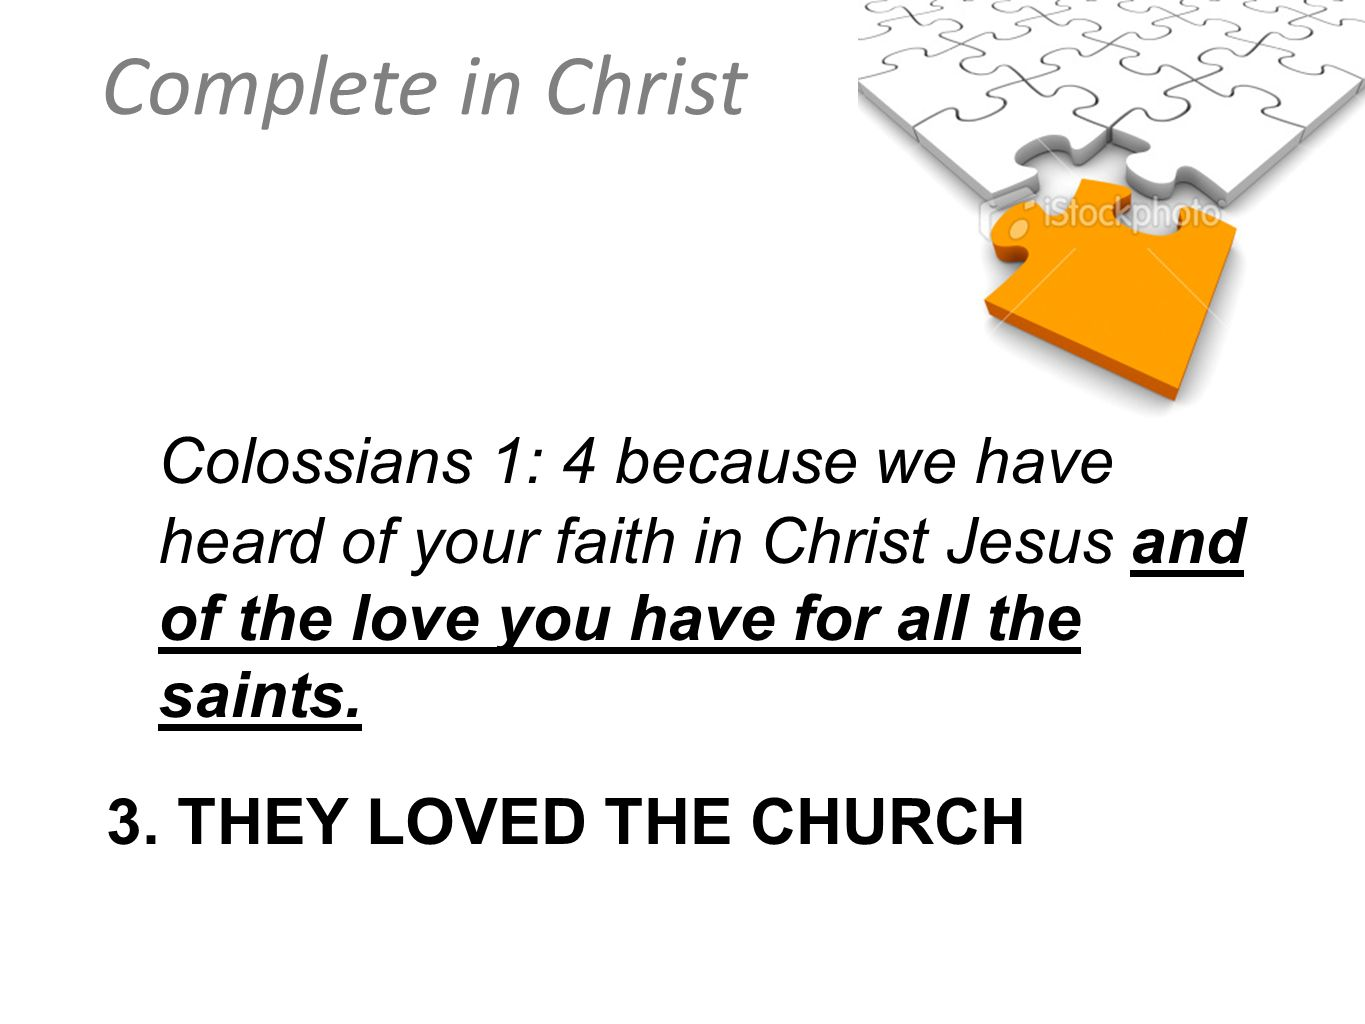 Complete in Christ Colossians 1: 4 because we have heard of your faith in Christ Jesus and of the love you have for all the saints. 3. THEY LOVED THE